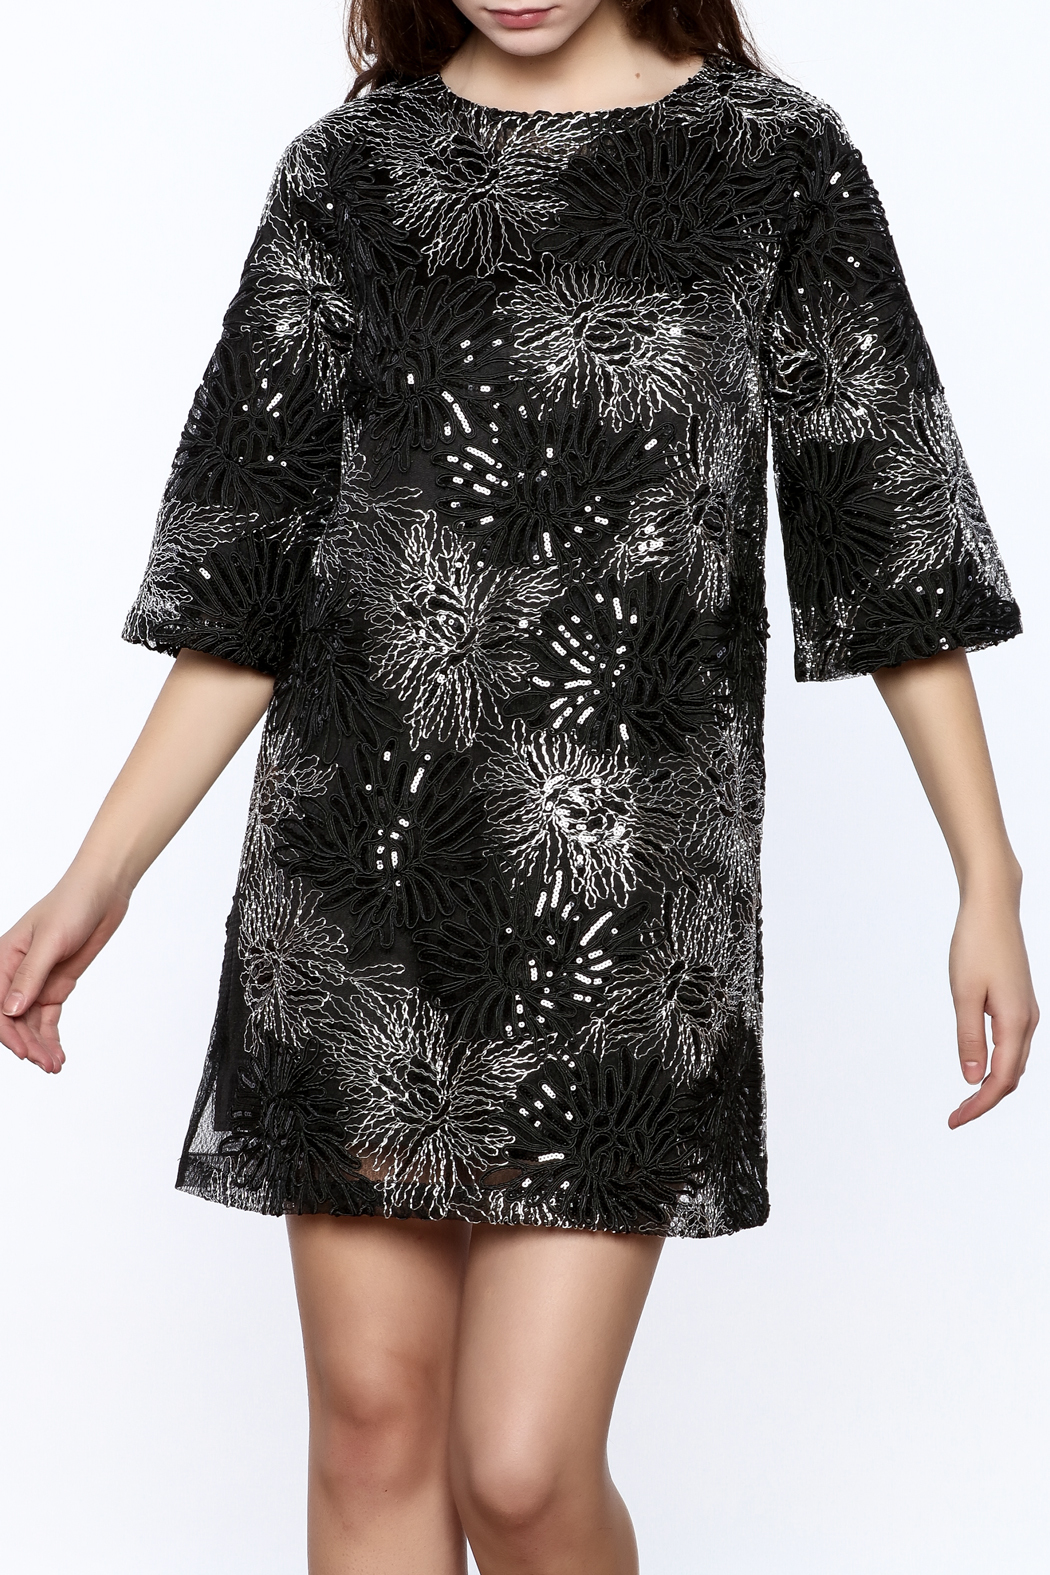 beulah Black And Silver Sequined Shift Dress - Main Image